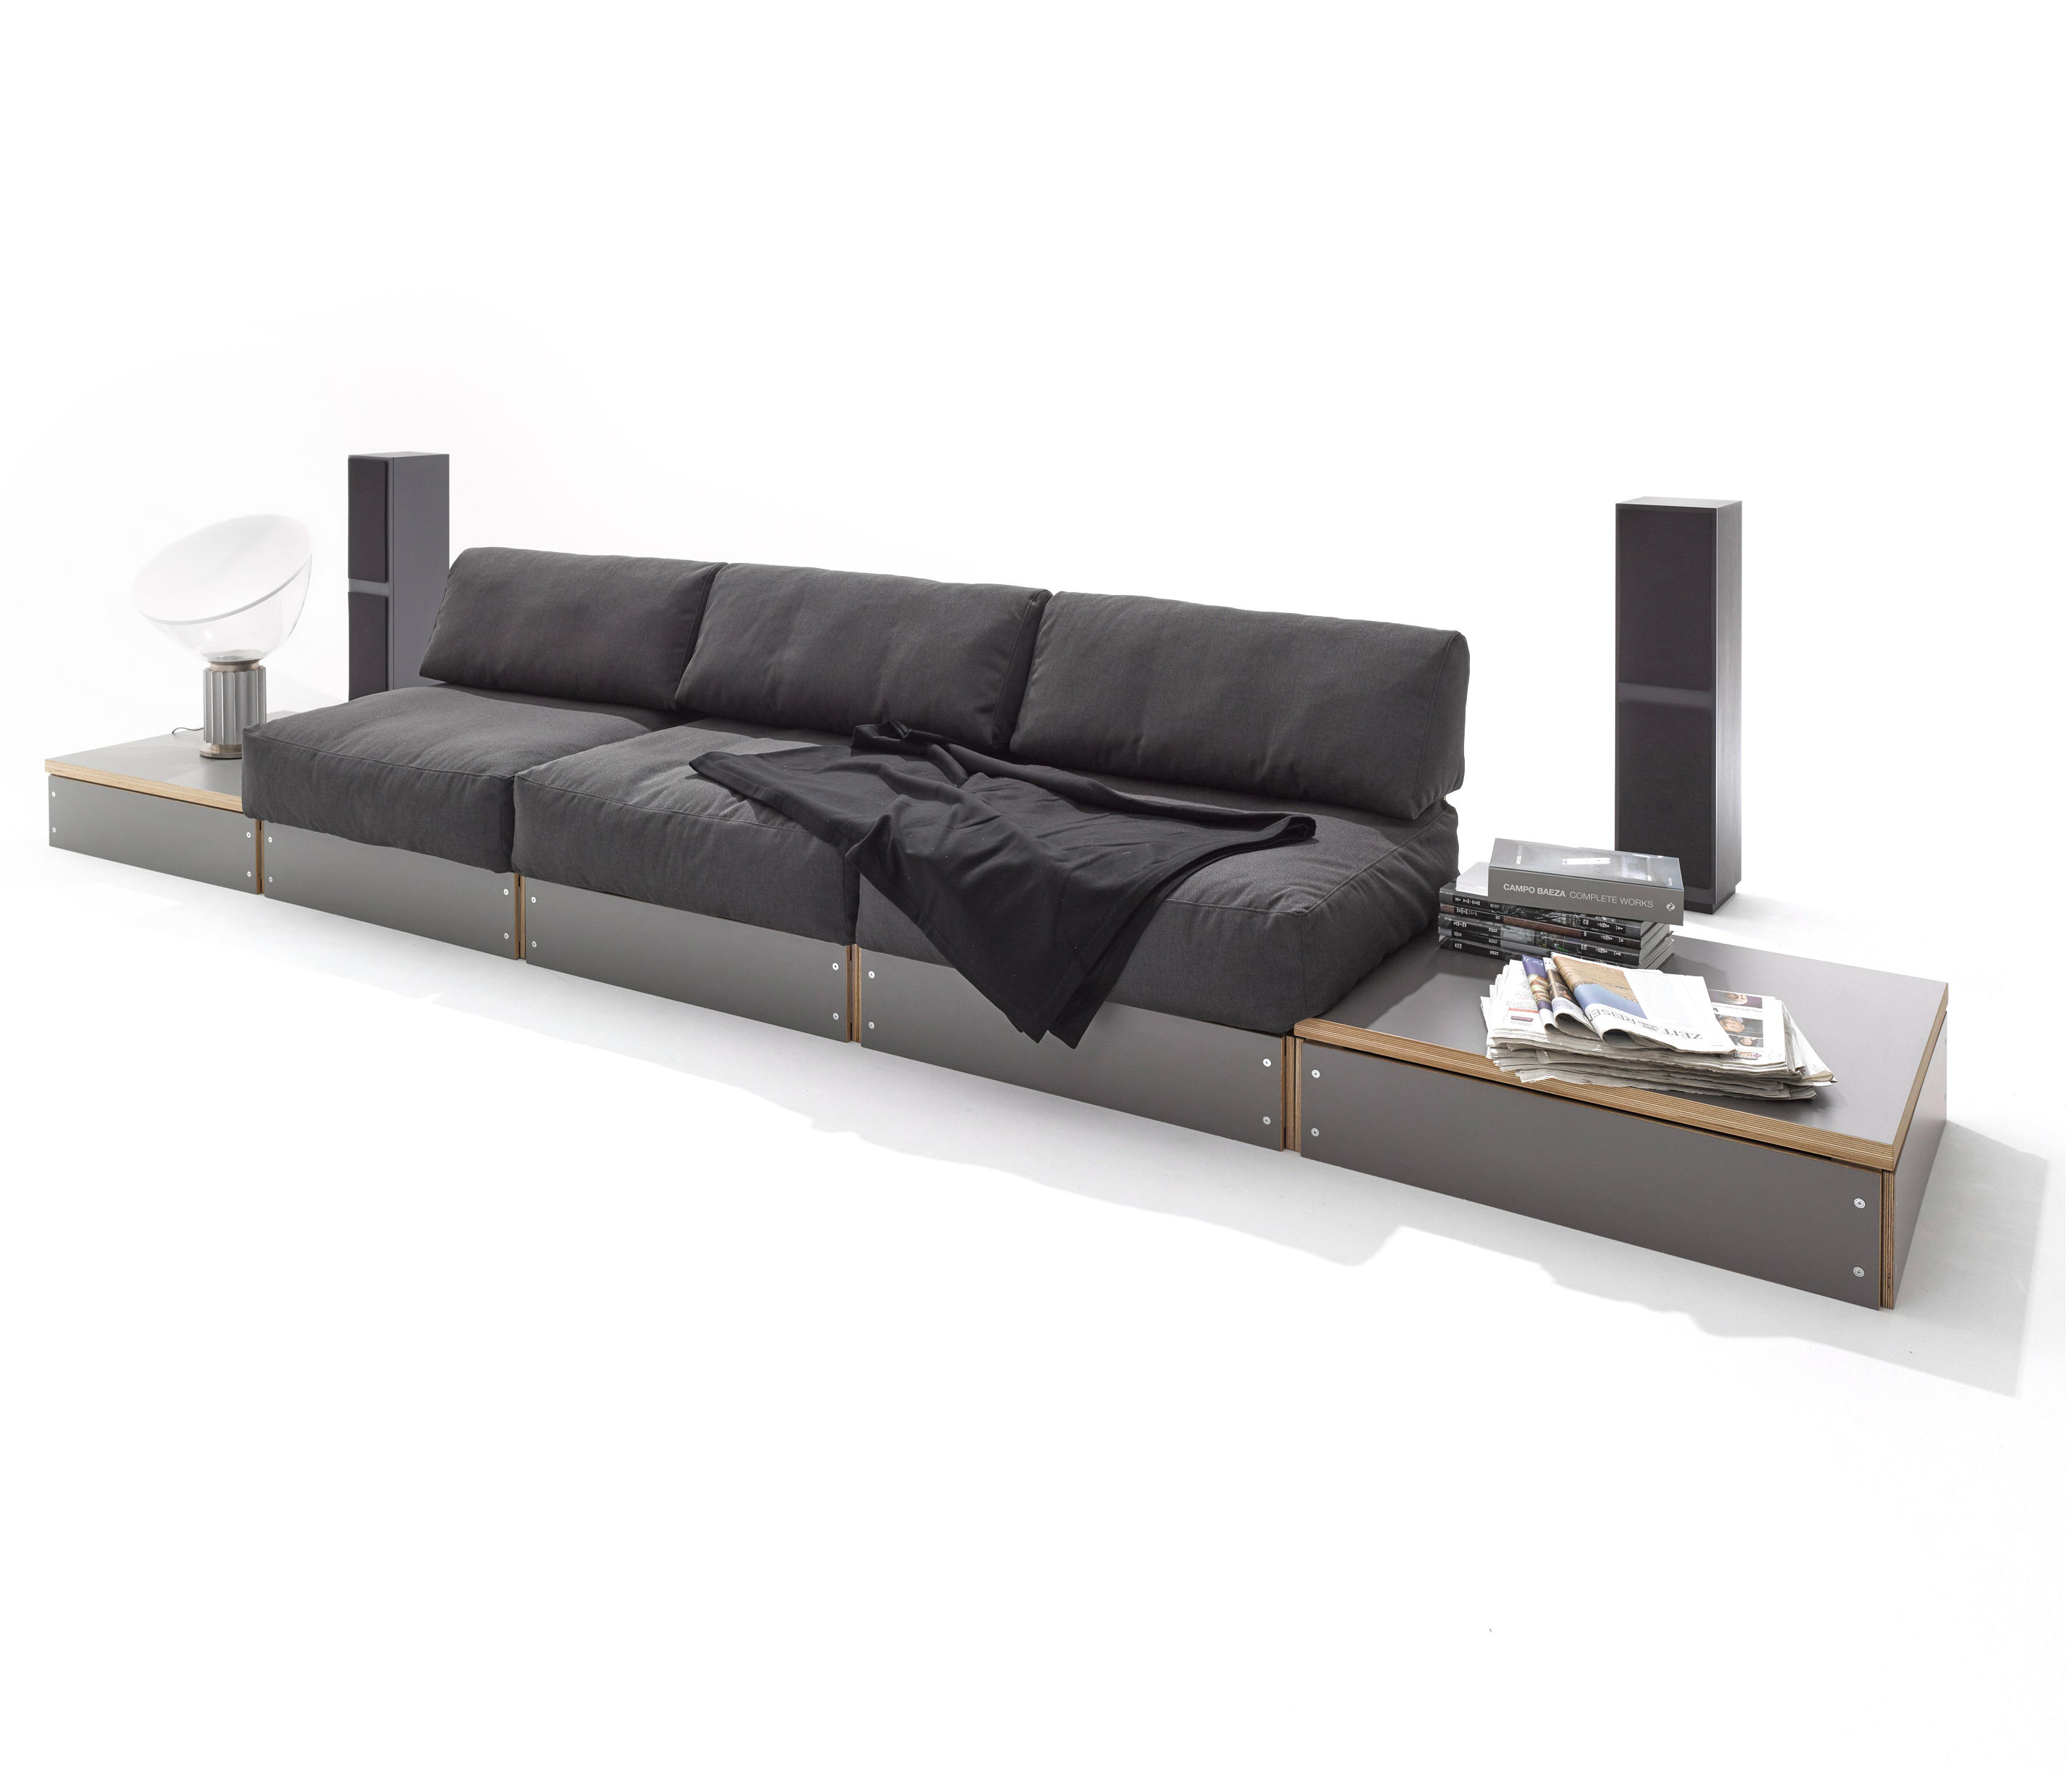 sofabank canap s de m ller m belwerkst tten architonic. Black Bedroom Furniture Sets. Home Design Ideas